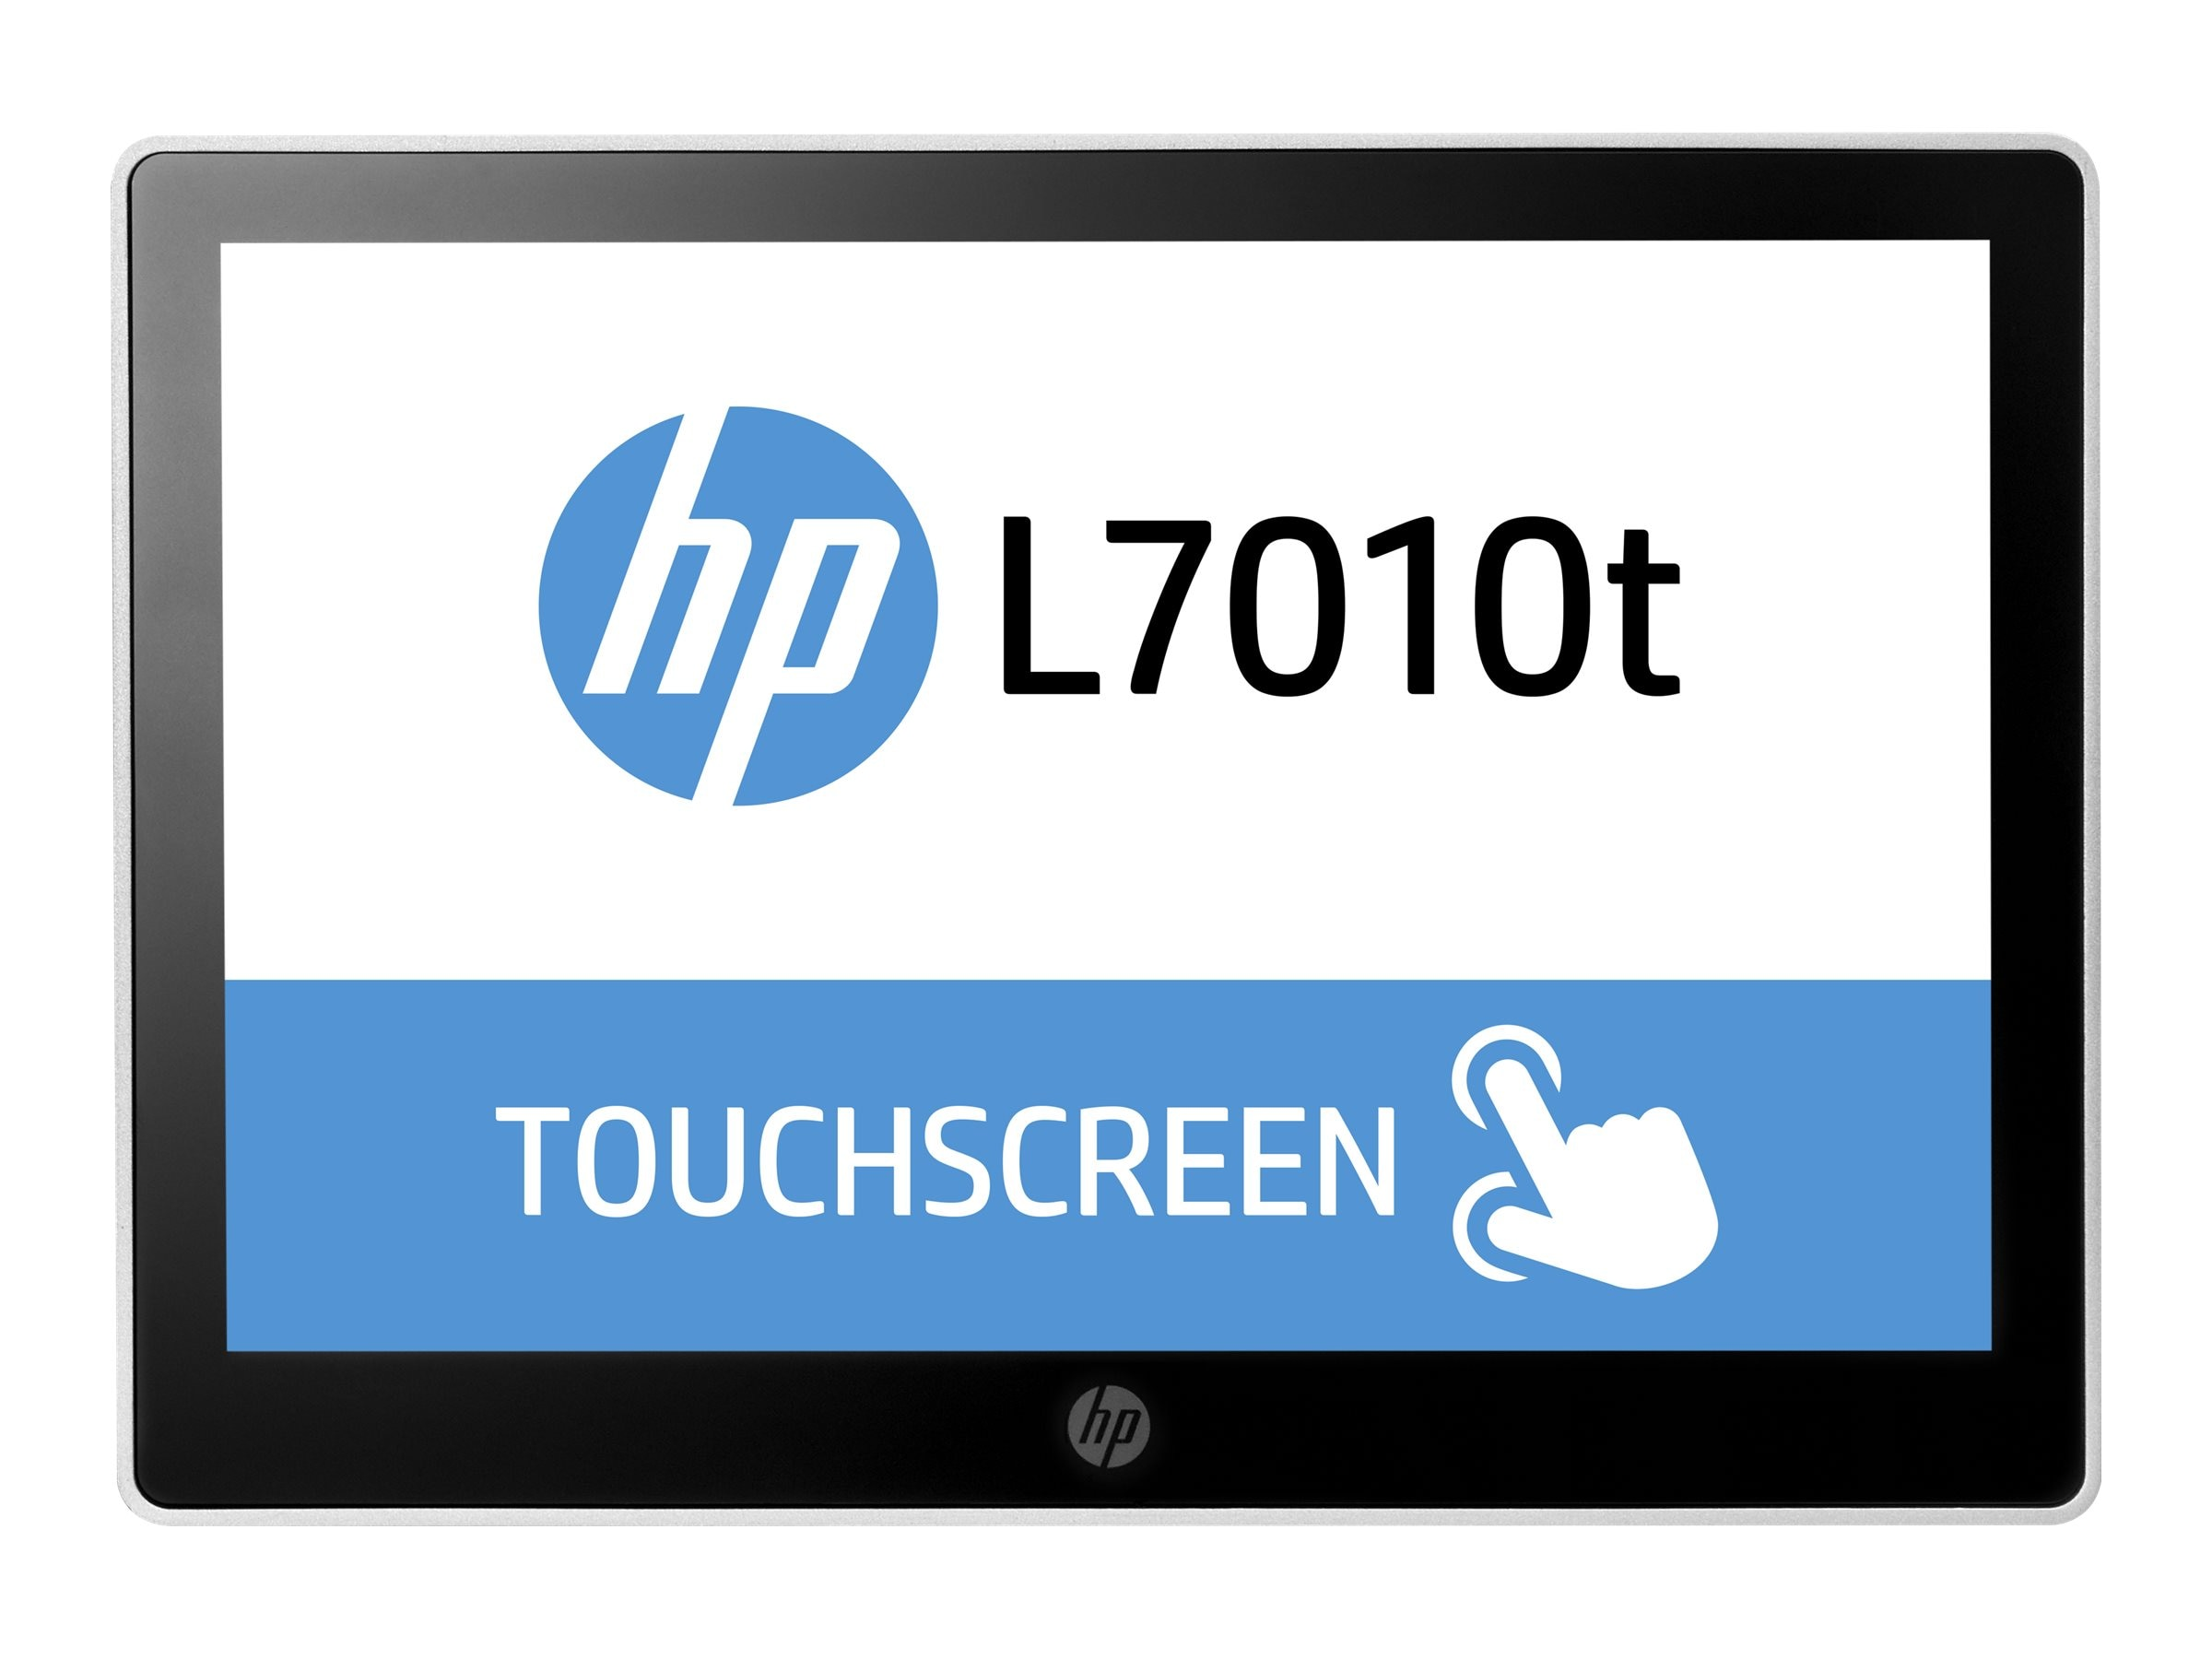 HP 10.1 L7010t LED-LCD Retail Touchscreen Monitor, Black, T6N30AA#ABA